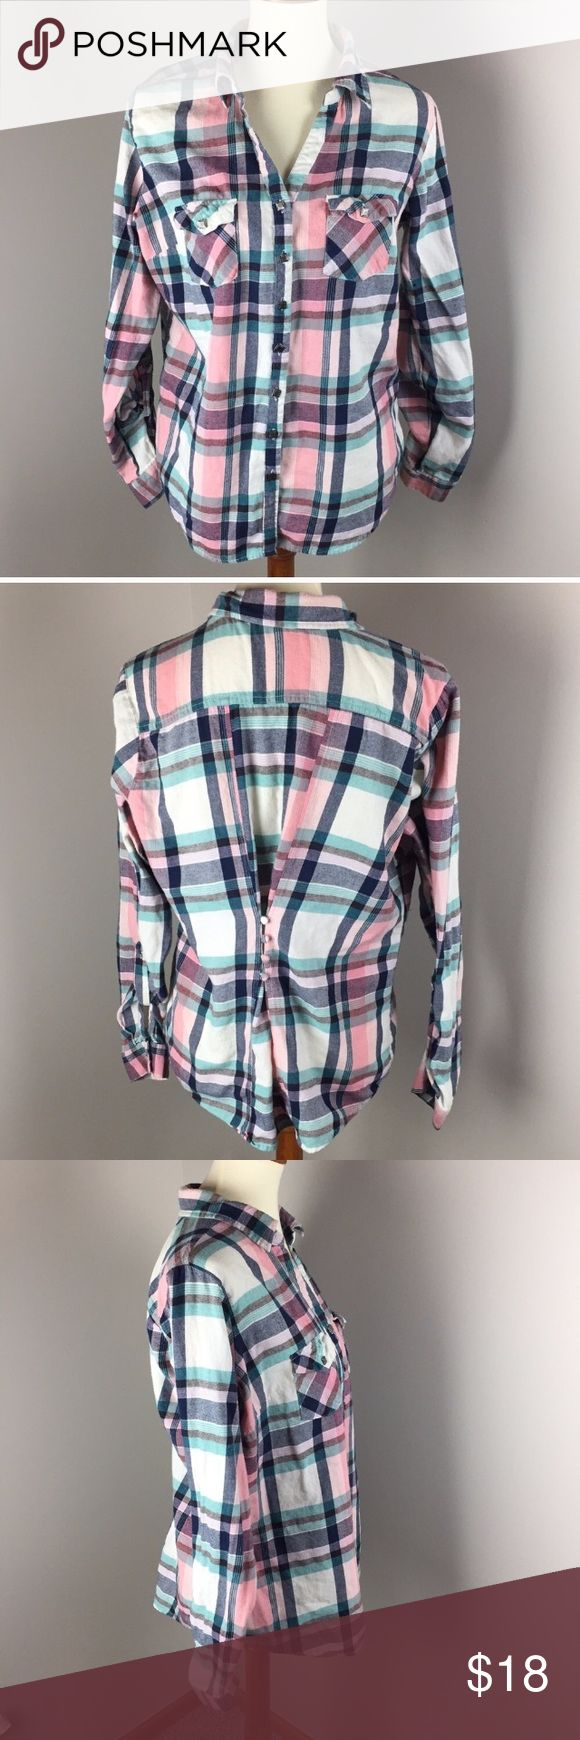 Shirt plaid Women's pink plaid button up flannel shirt.  Smoke free animal free home environment.  This adorable shirt looks great with jeans and is so girly looking. You'll feel so good when people say how cute you look and the buttons gather up the back to give it a snug look. Says XL but fits more like a large. Maurices Tops Button Down Shirts